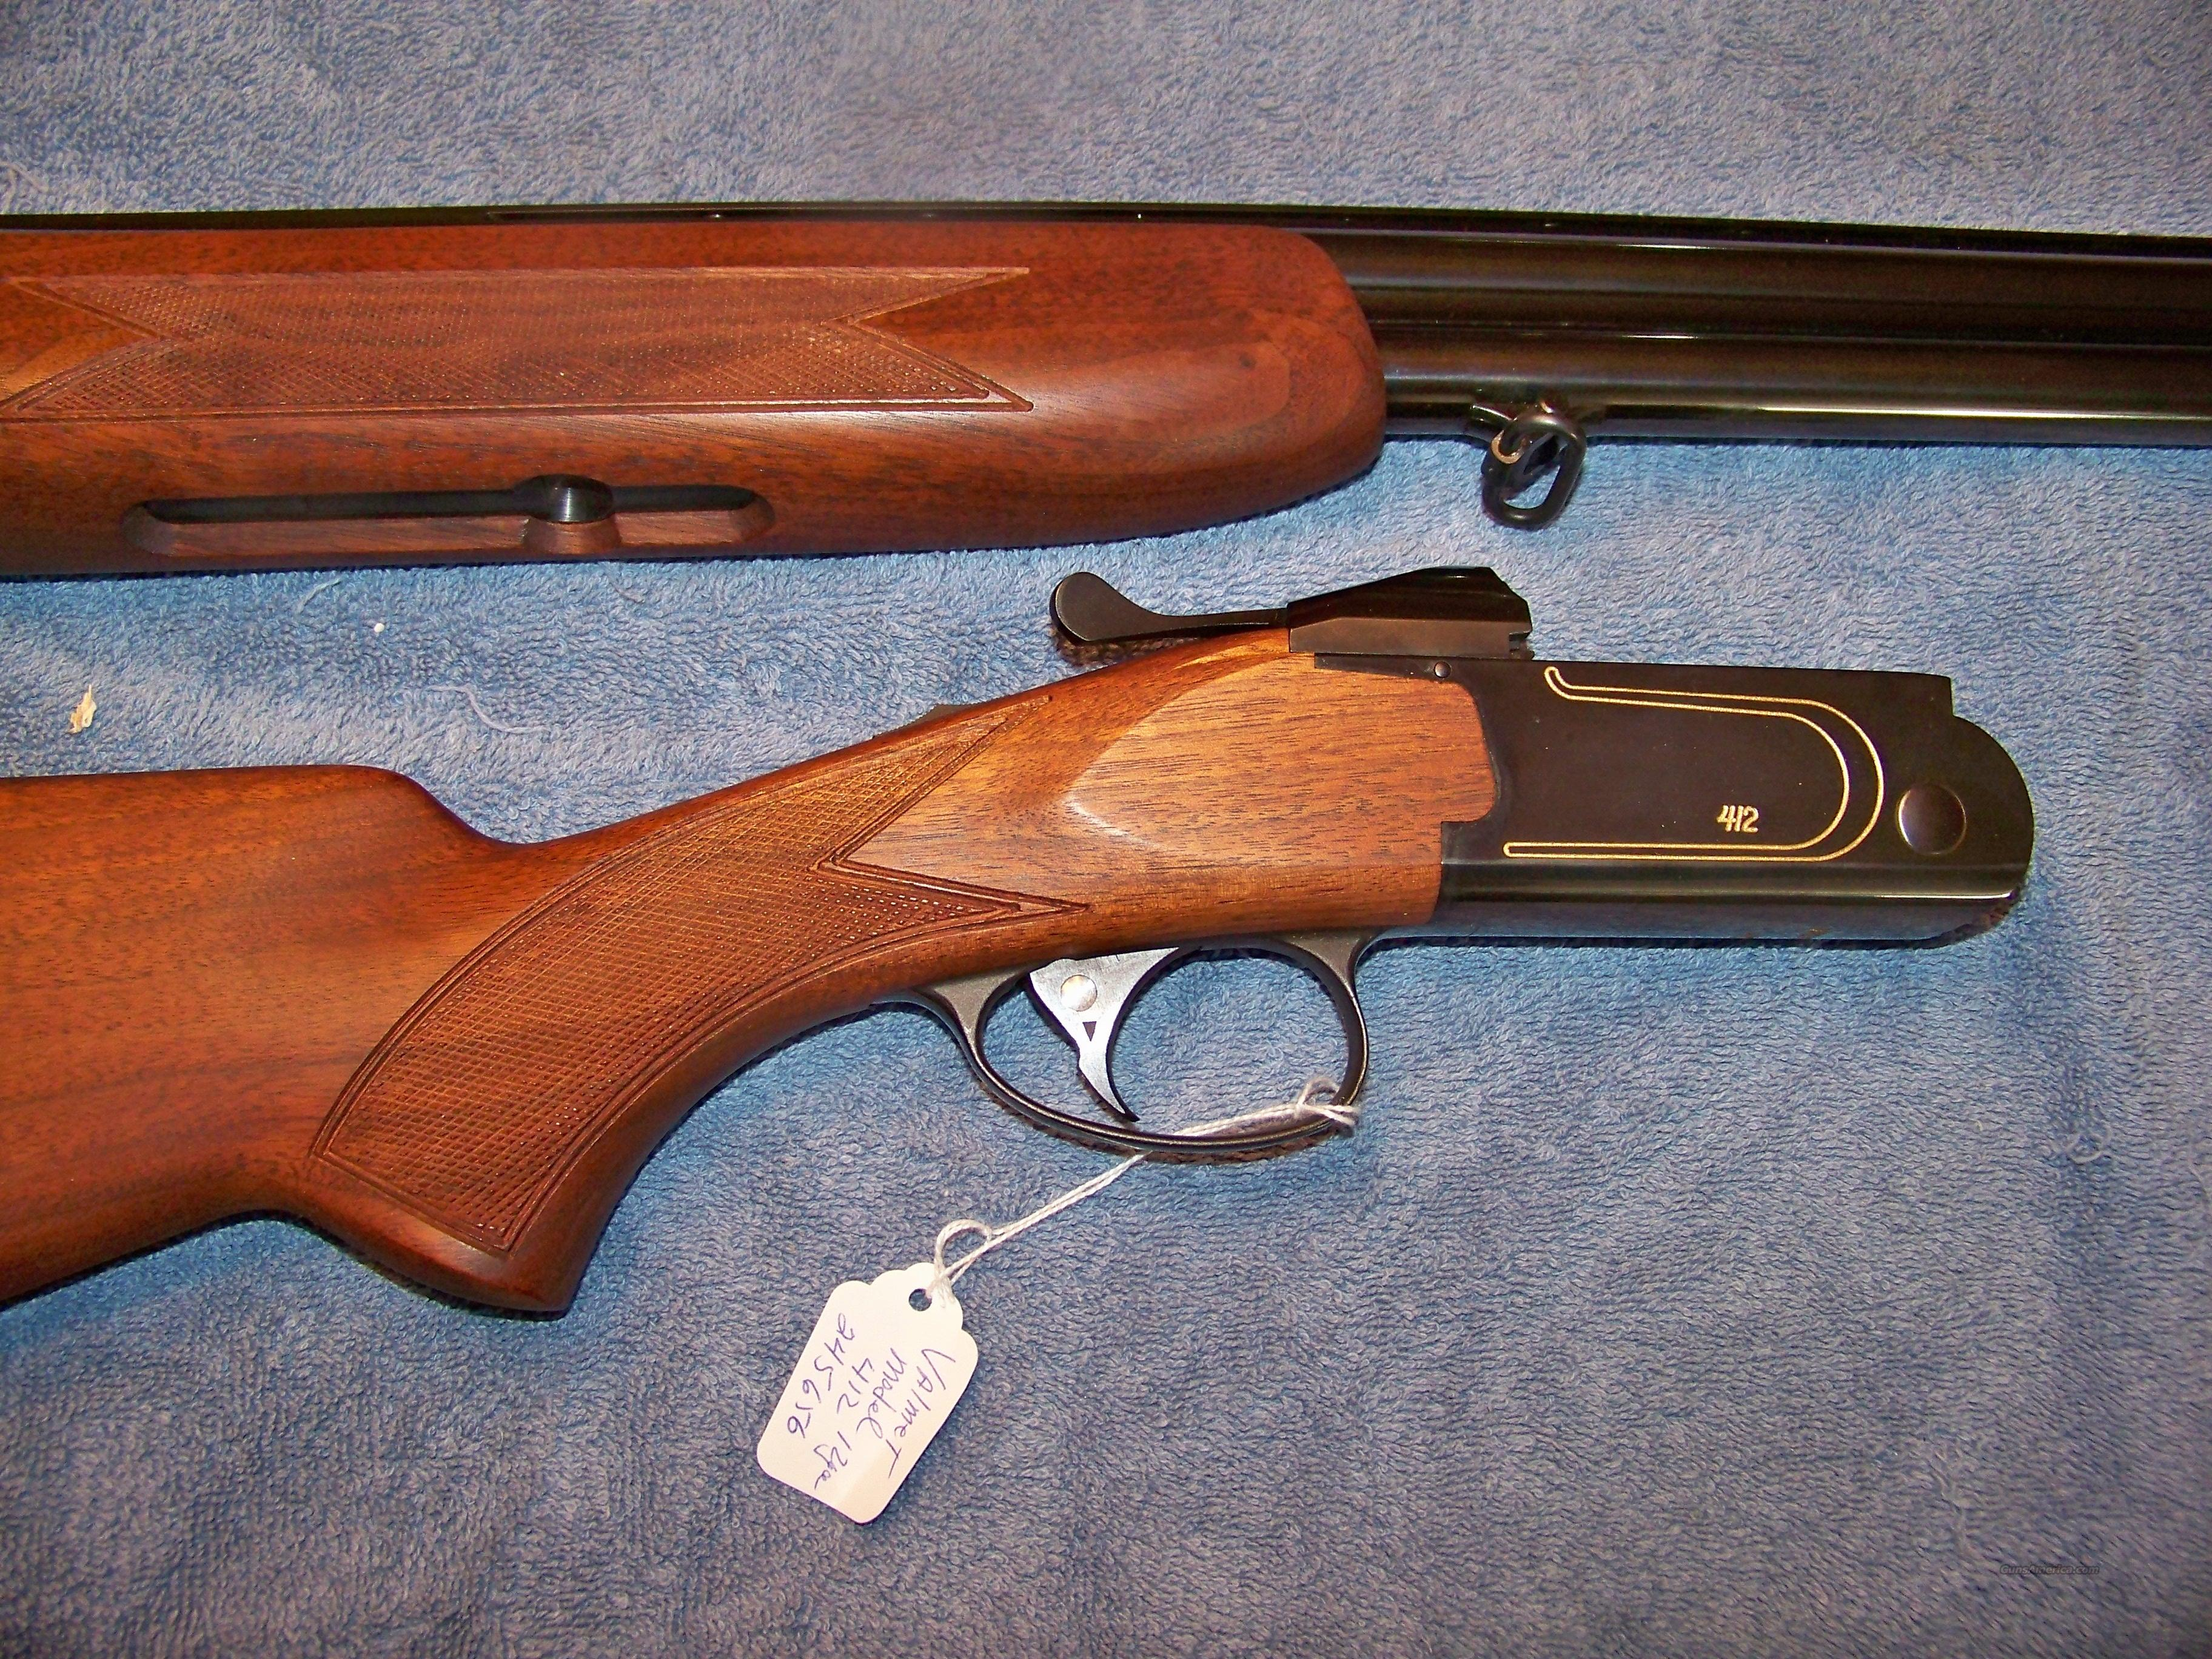 VALMET MODEL 412 12GA NEW IN BOX  Guns > Shotguns > Valmet Shotguns